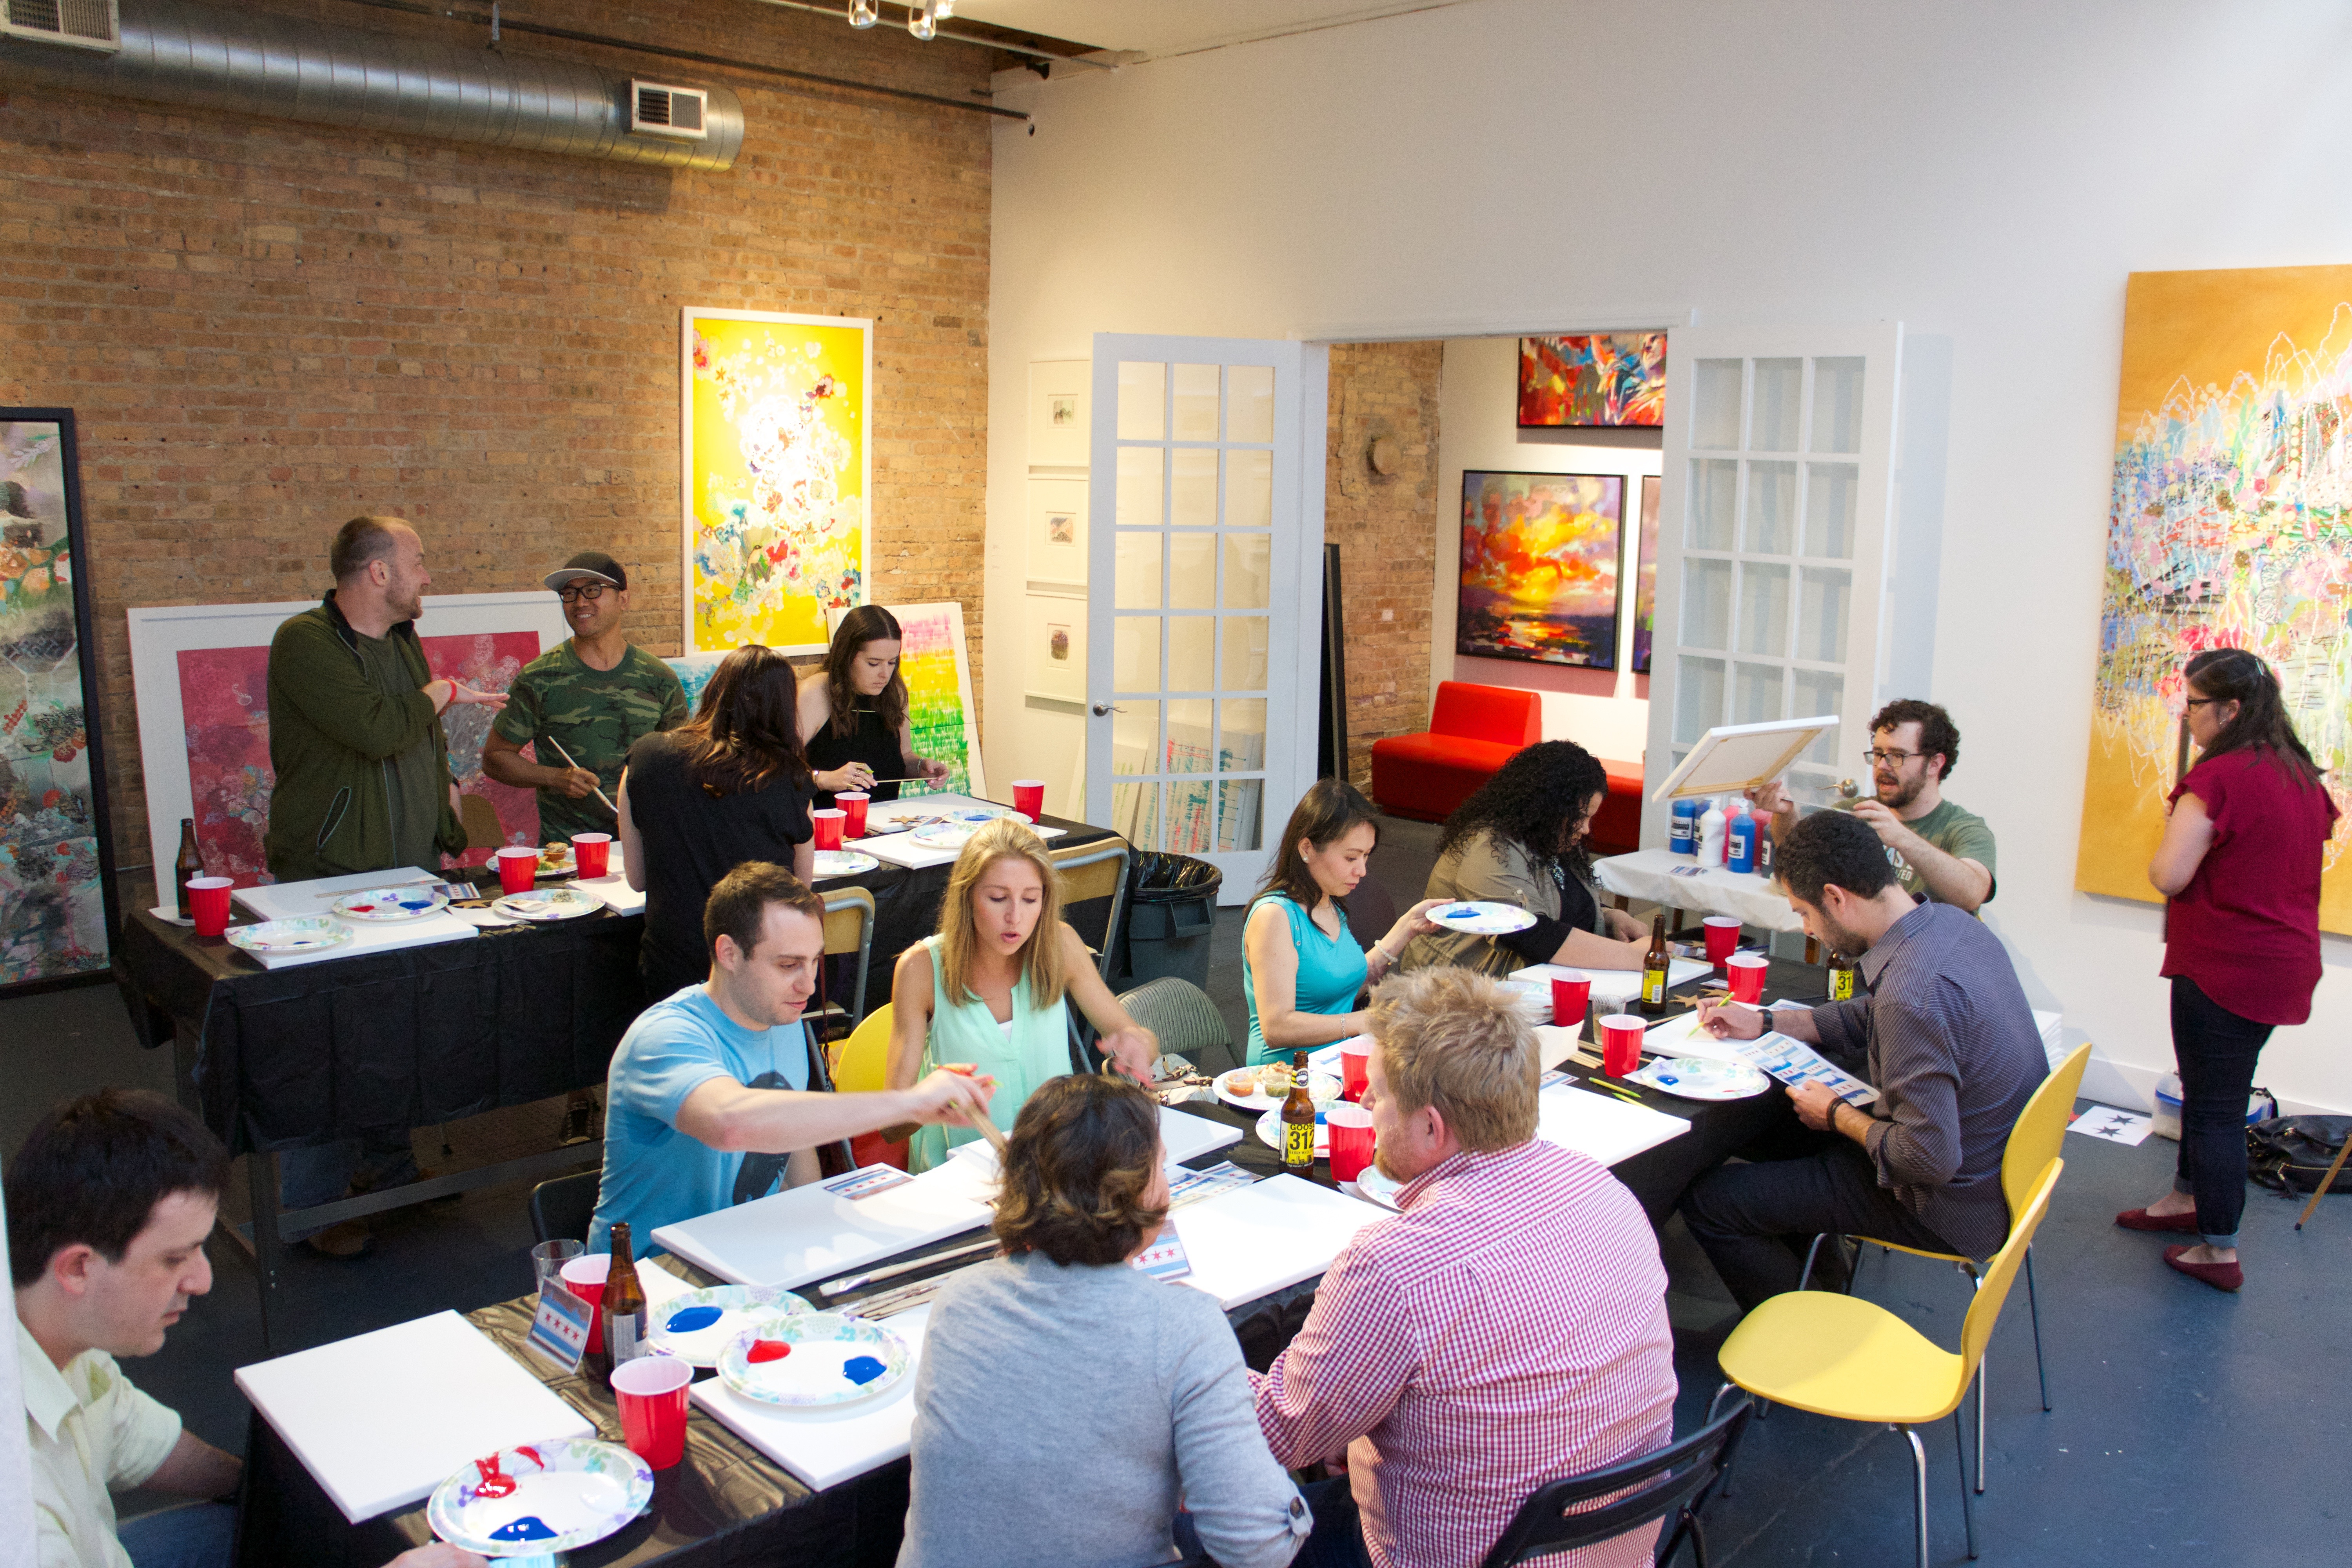 iCanvas company paint party - Fulton Market Gallery